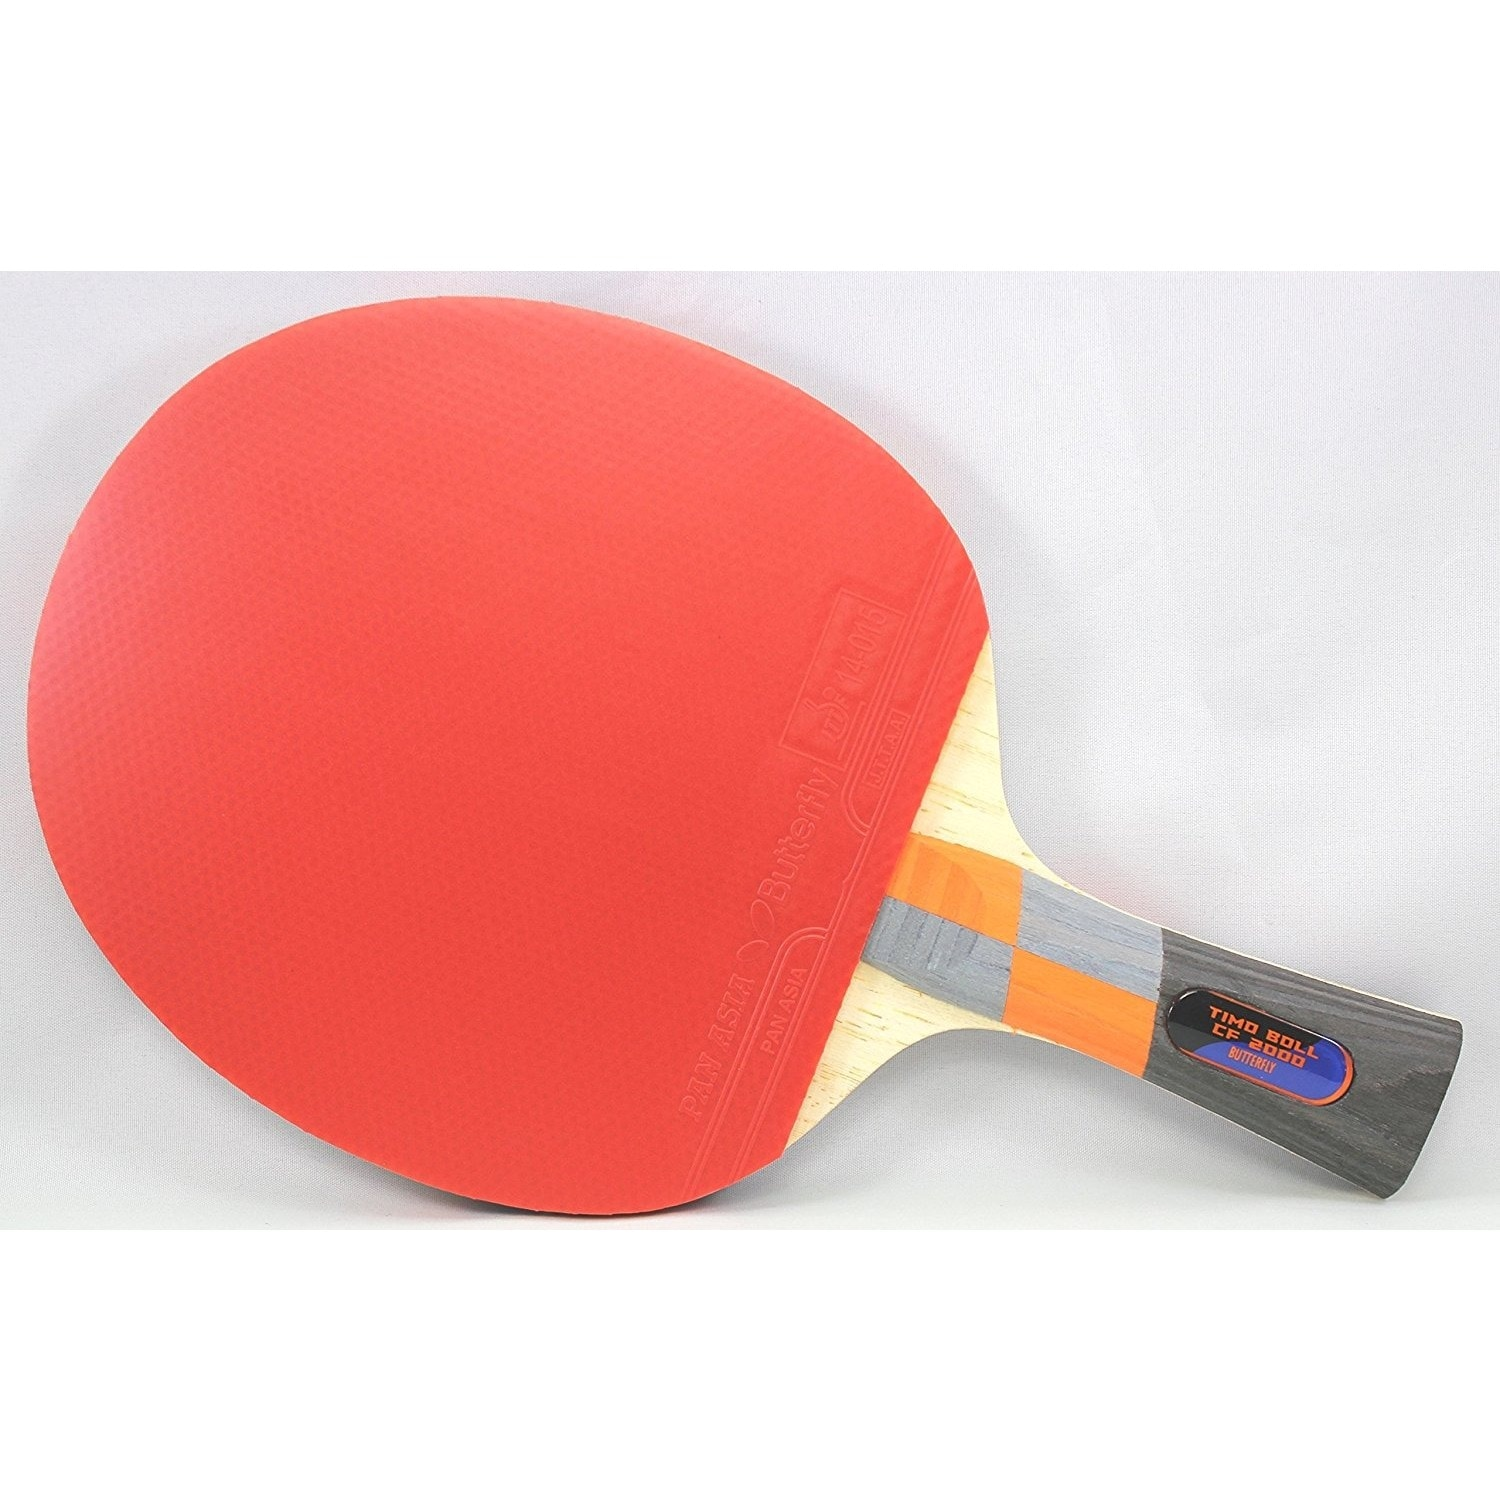 gergely butterfly product blade lightbox gpsports table app tennis alpha